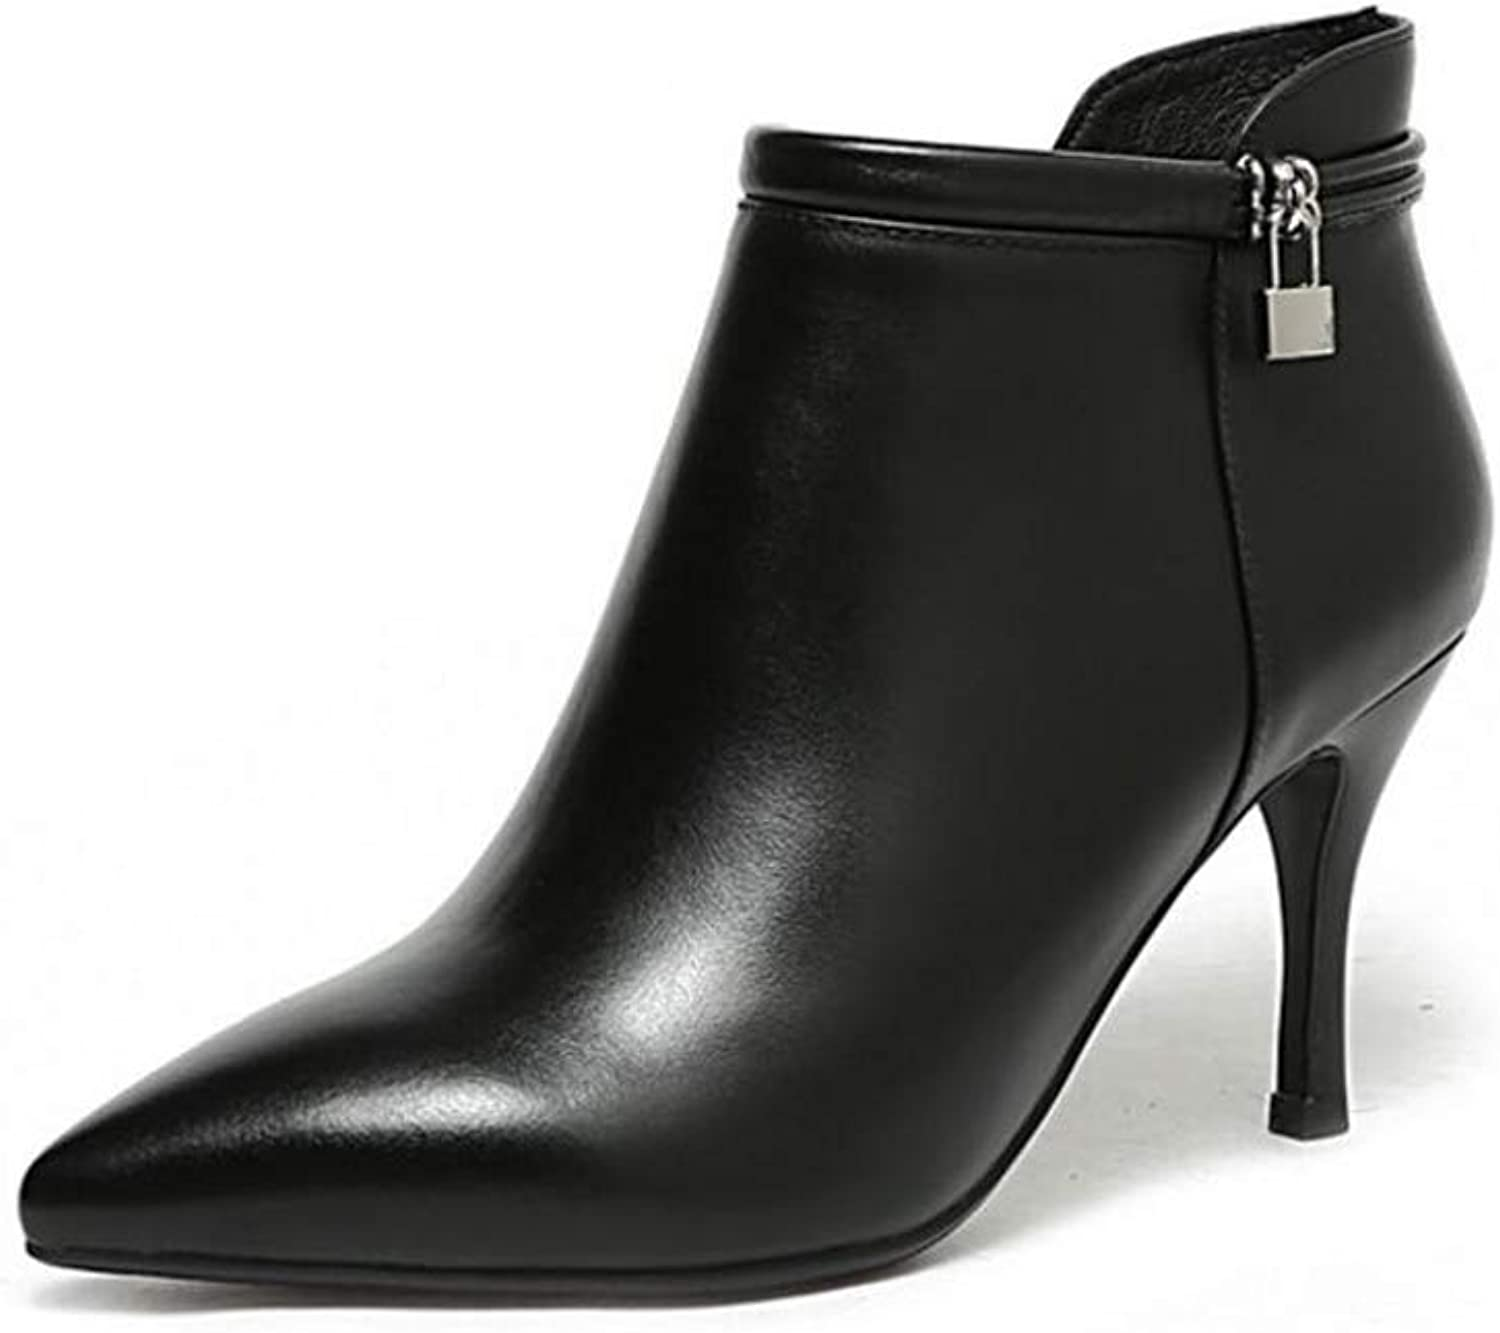 Ladies Ankle Boots, Autumn and Winter New Leather Sexy Red Bare Boots Pointed Knight Boots Stiletto Boots High Heel Women's Boots (color   Black, Size   40)